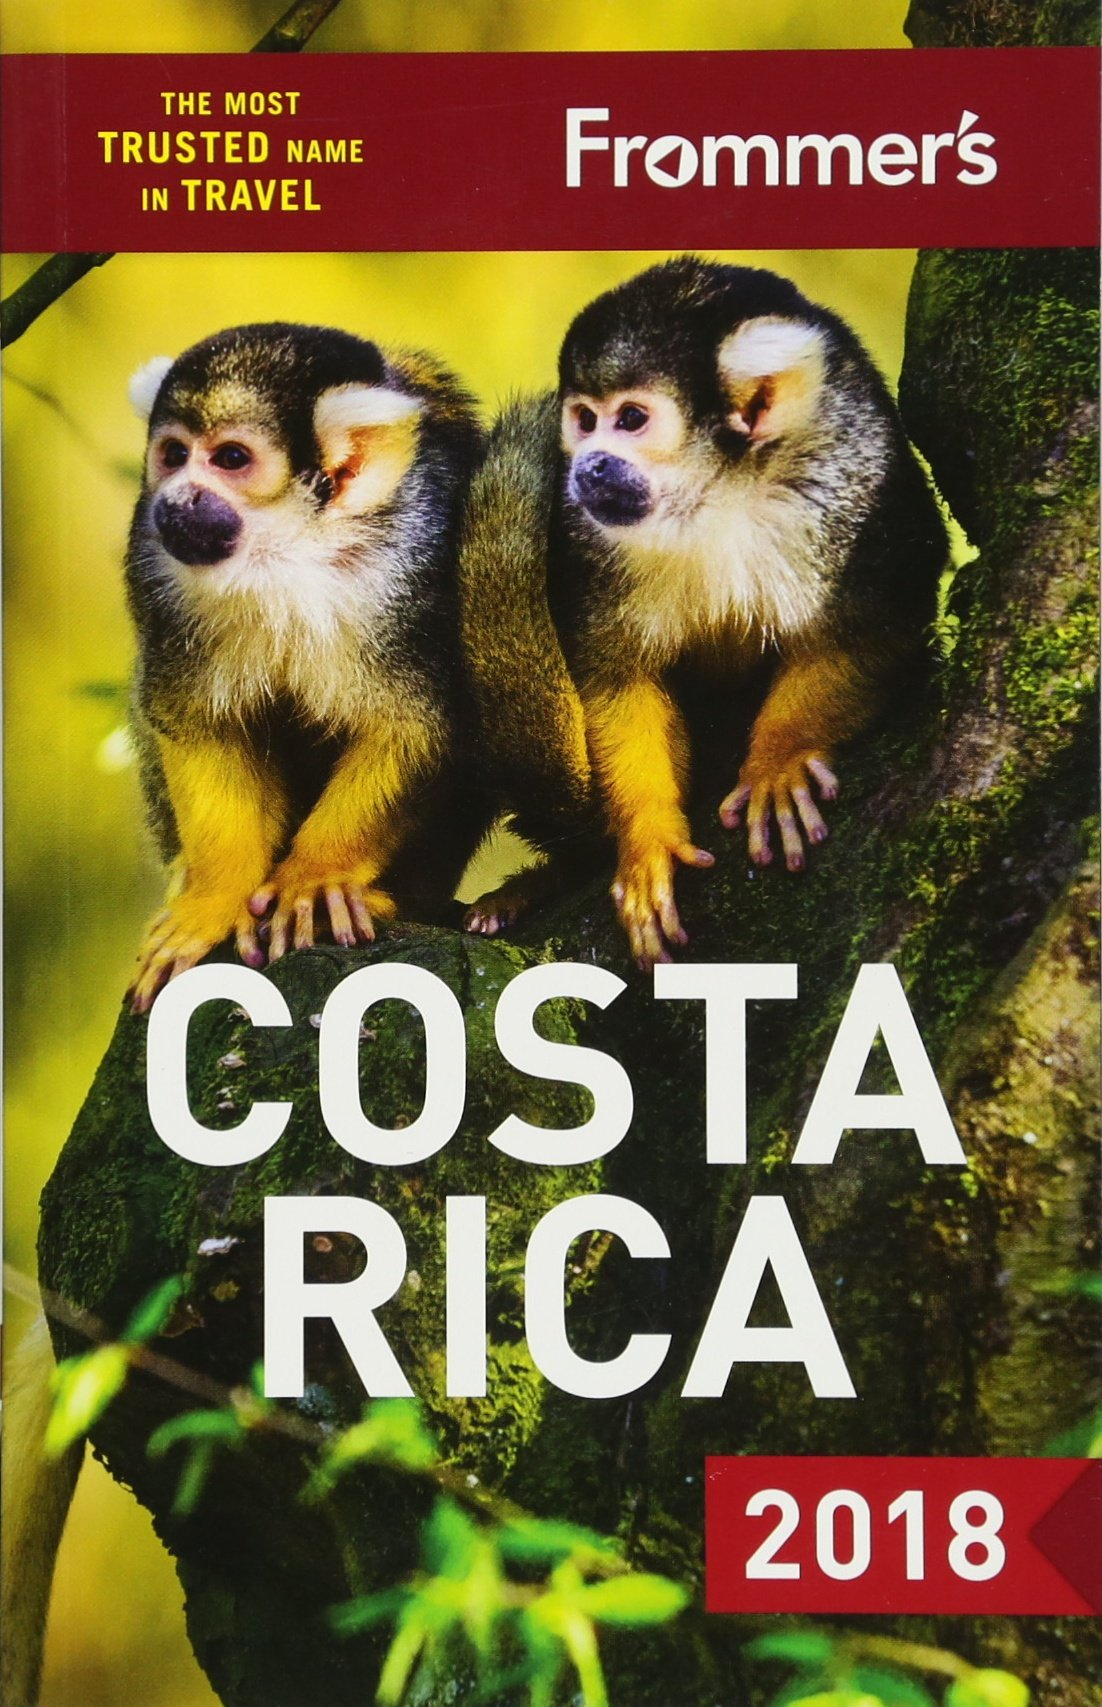 Frommer's Costa Rica 2018 (Complete Guides) Paperback – January 30, 2018 Nicholas Gill FrommerMedia 1628873388 Central America